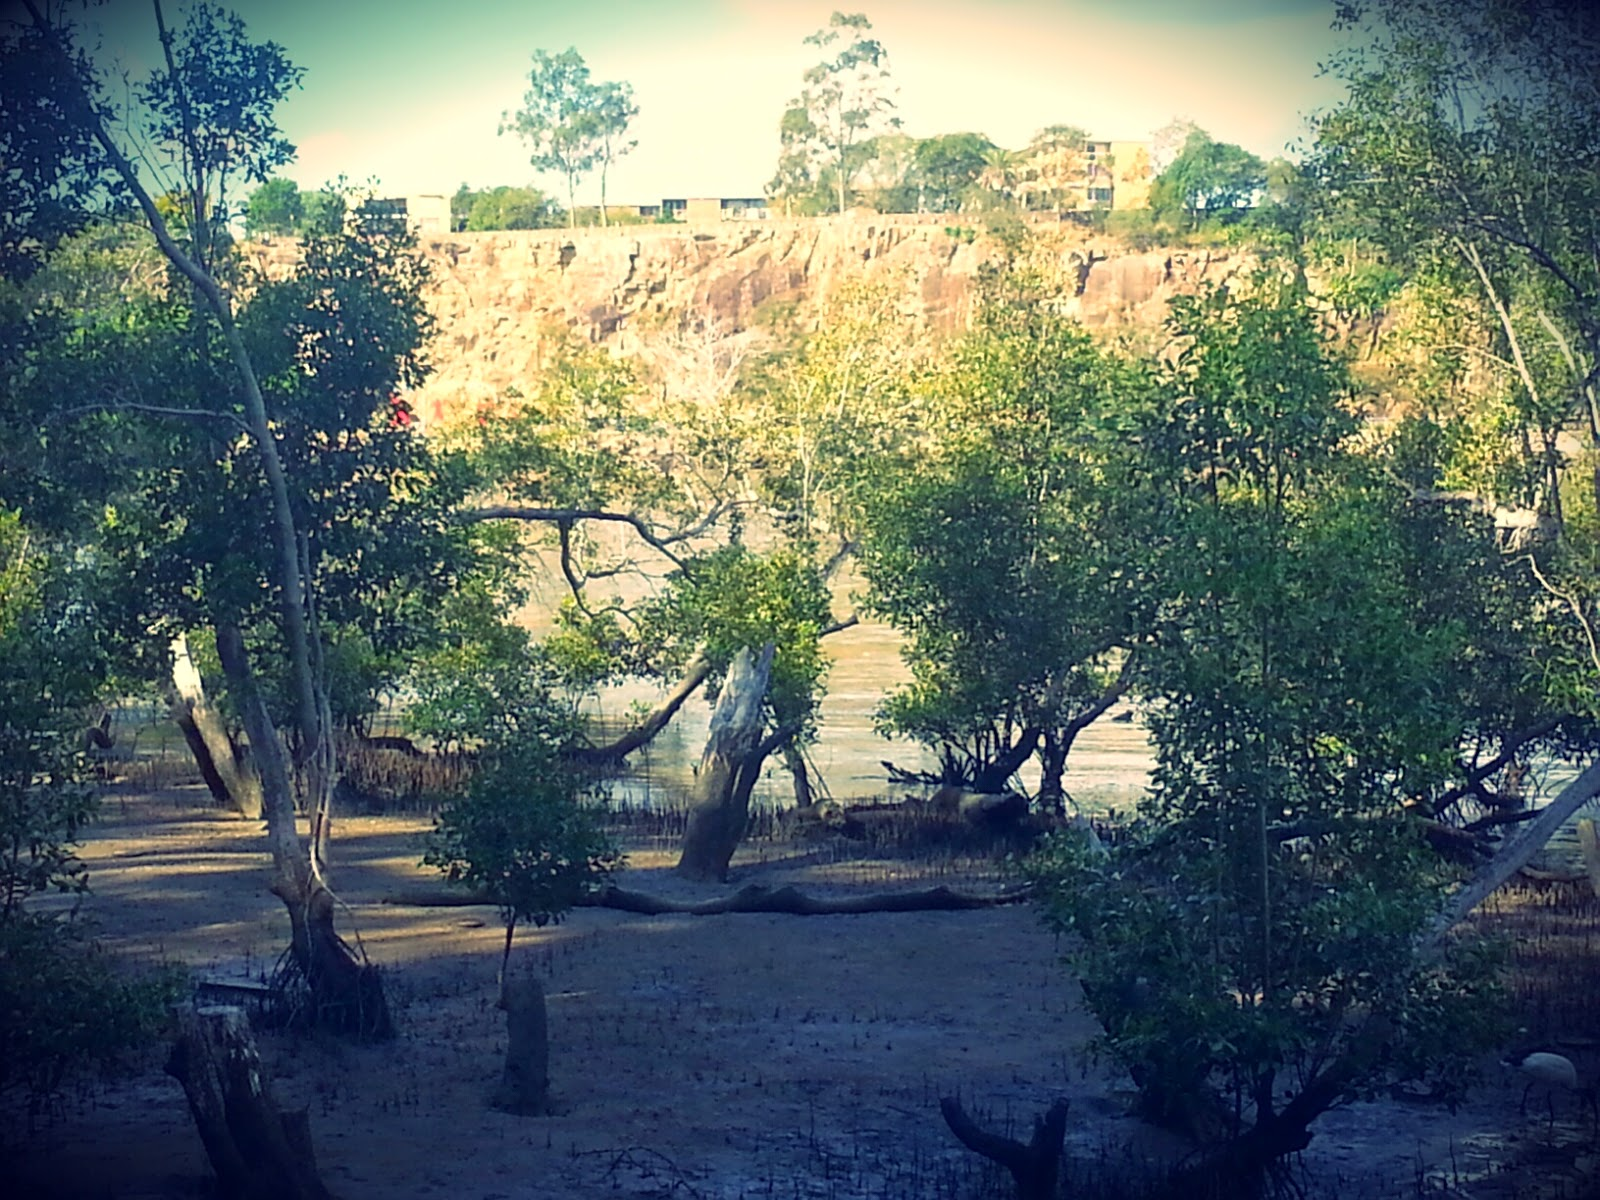 Mangroves on the Brisbane River